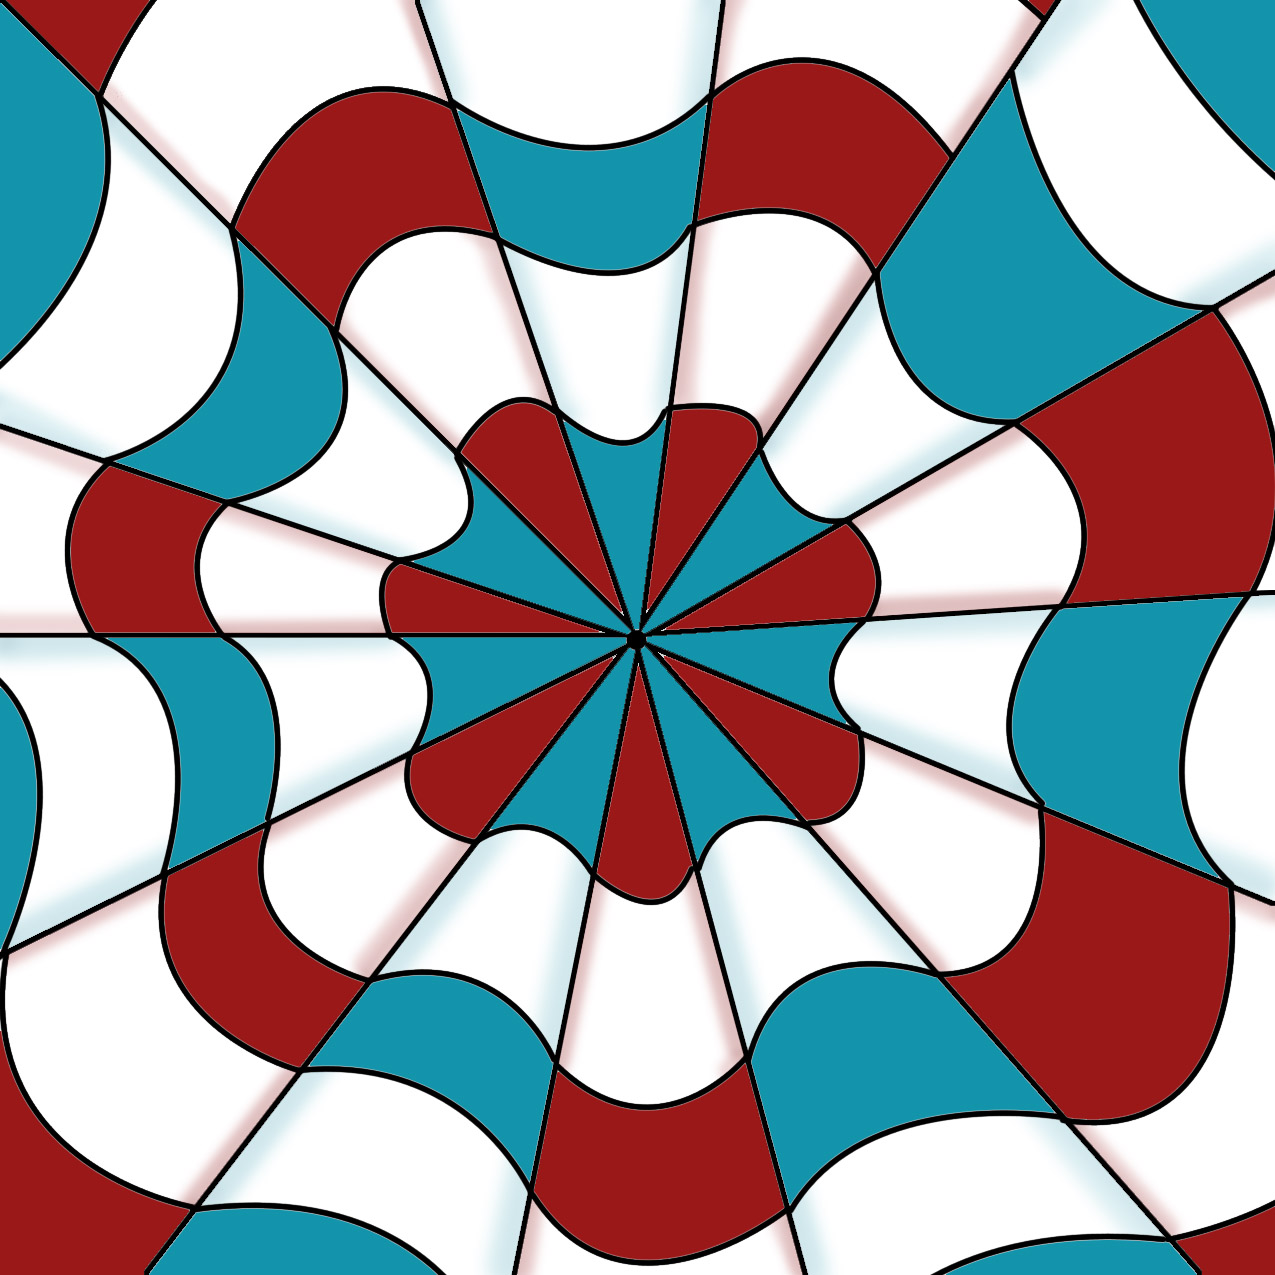 optical illusion illusions line project digital radial drawing drawings projects cool op hand ruler create tutorial coloring pages start focus